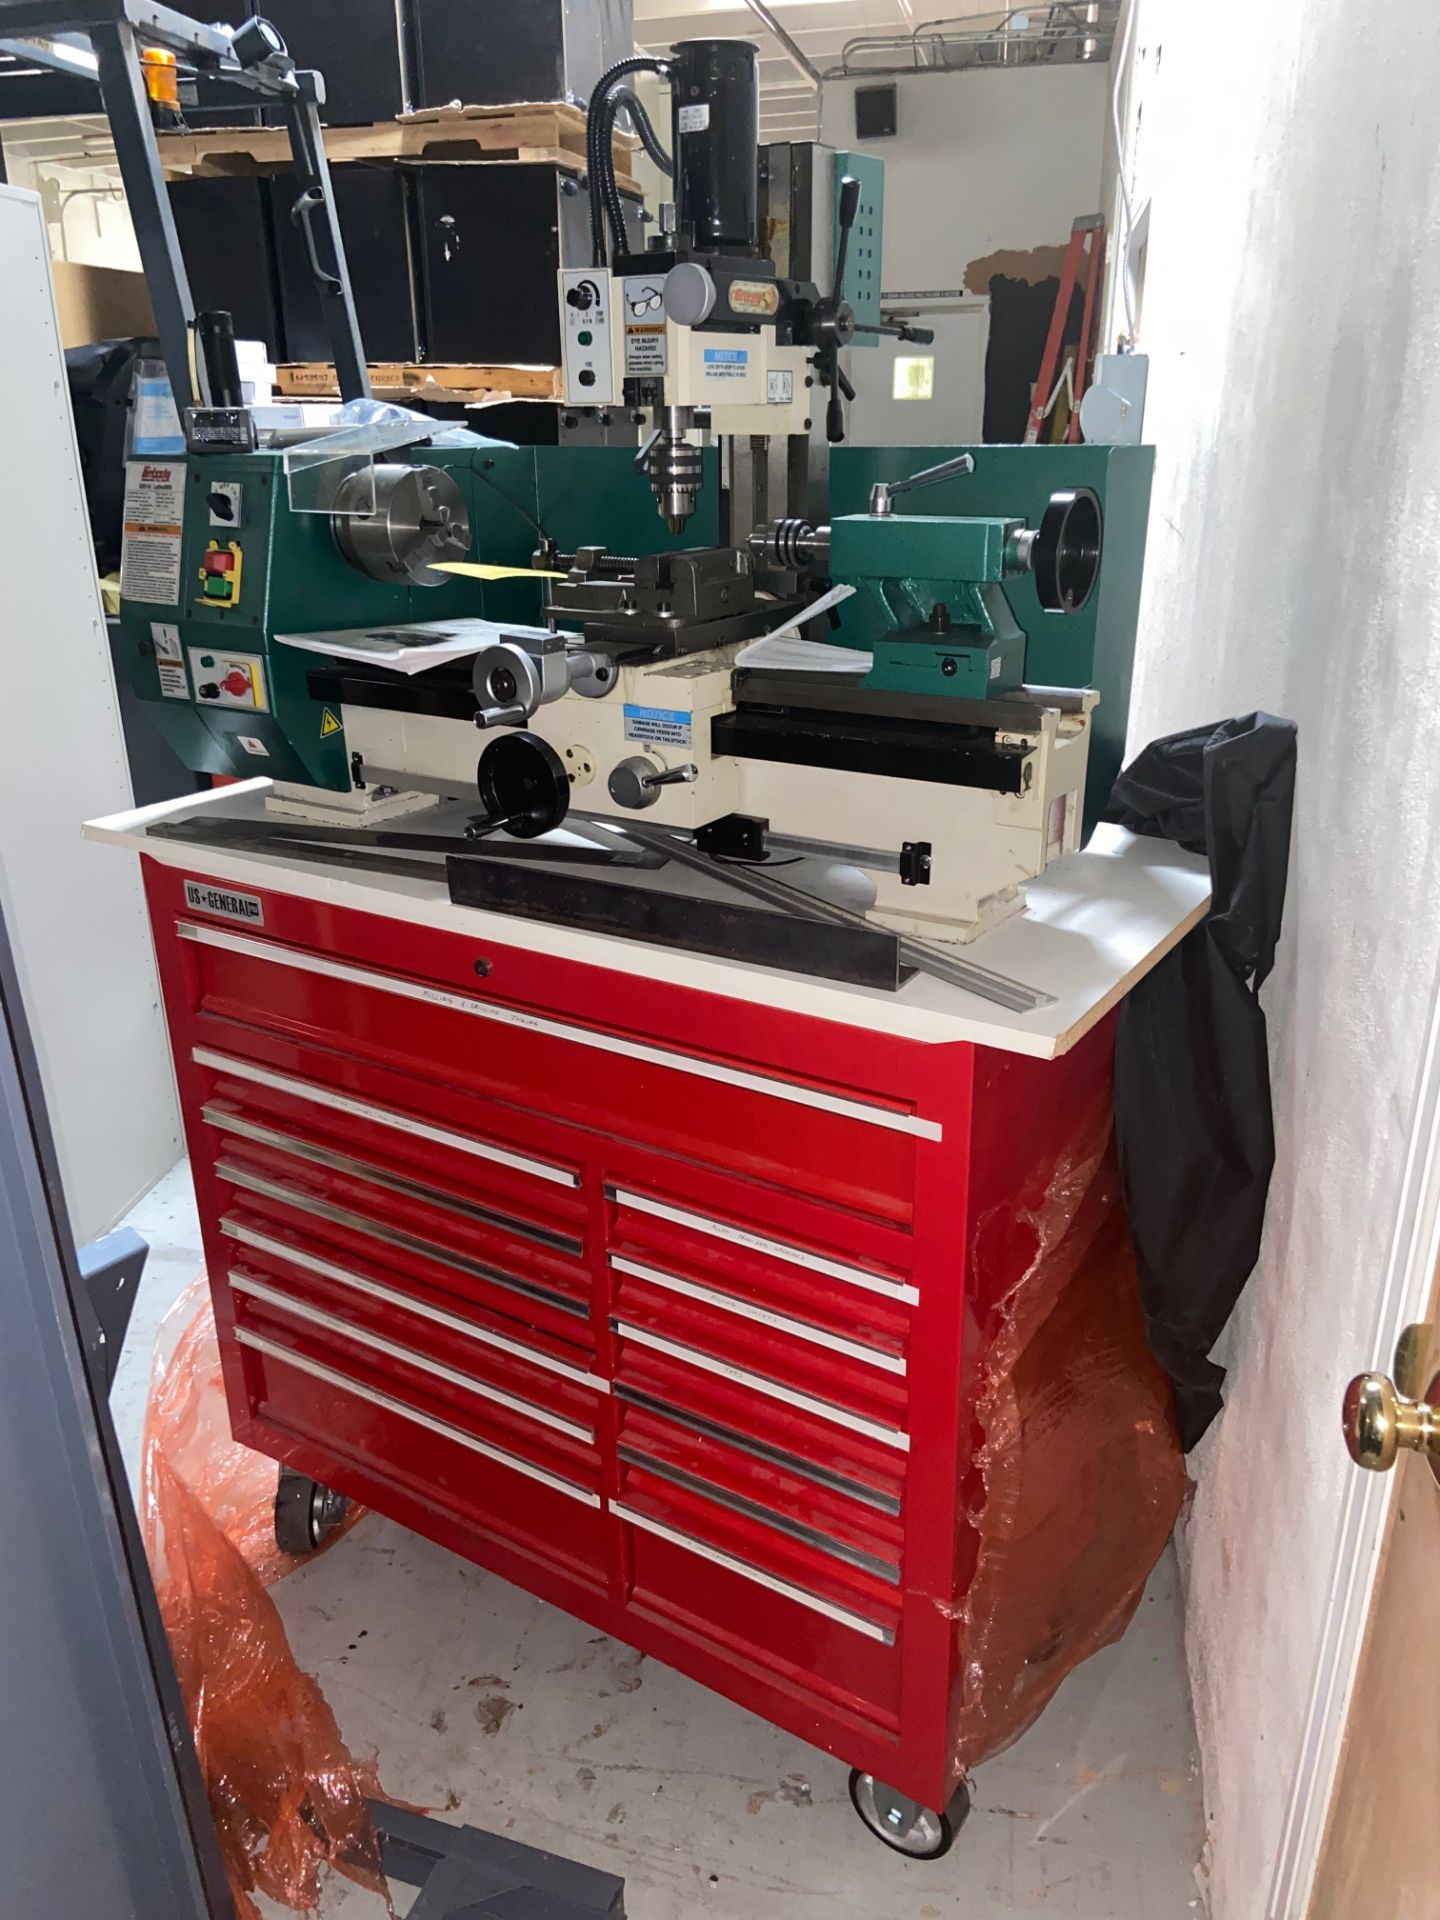 Grizzly Industrial Lathe/Mill, Model# G0516, Serial# MO120045, Lathe Motor 3/4 hp, 110V, 150-2400